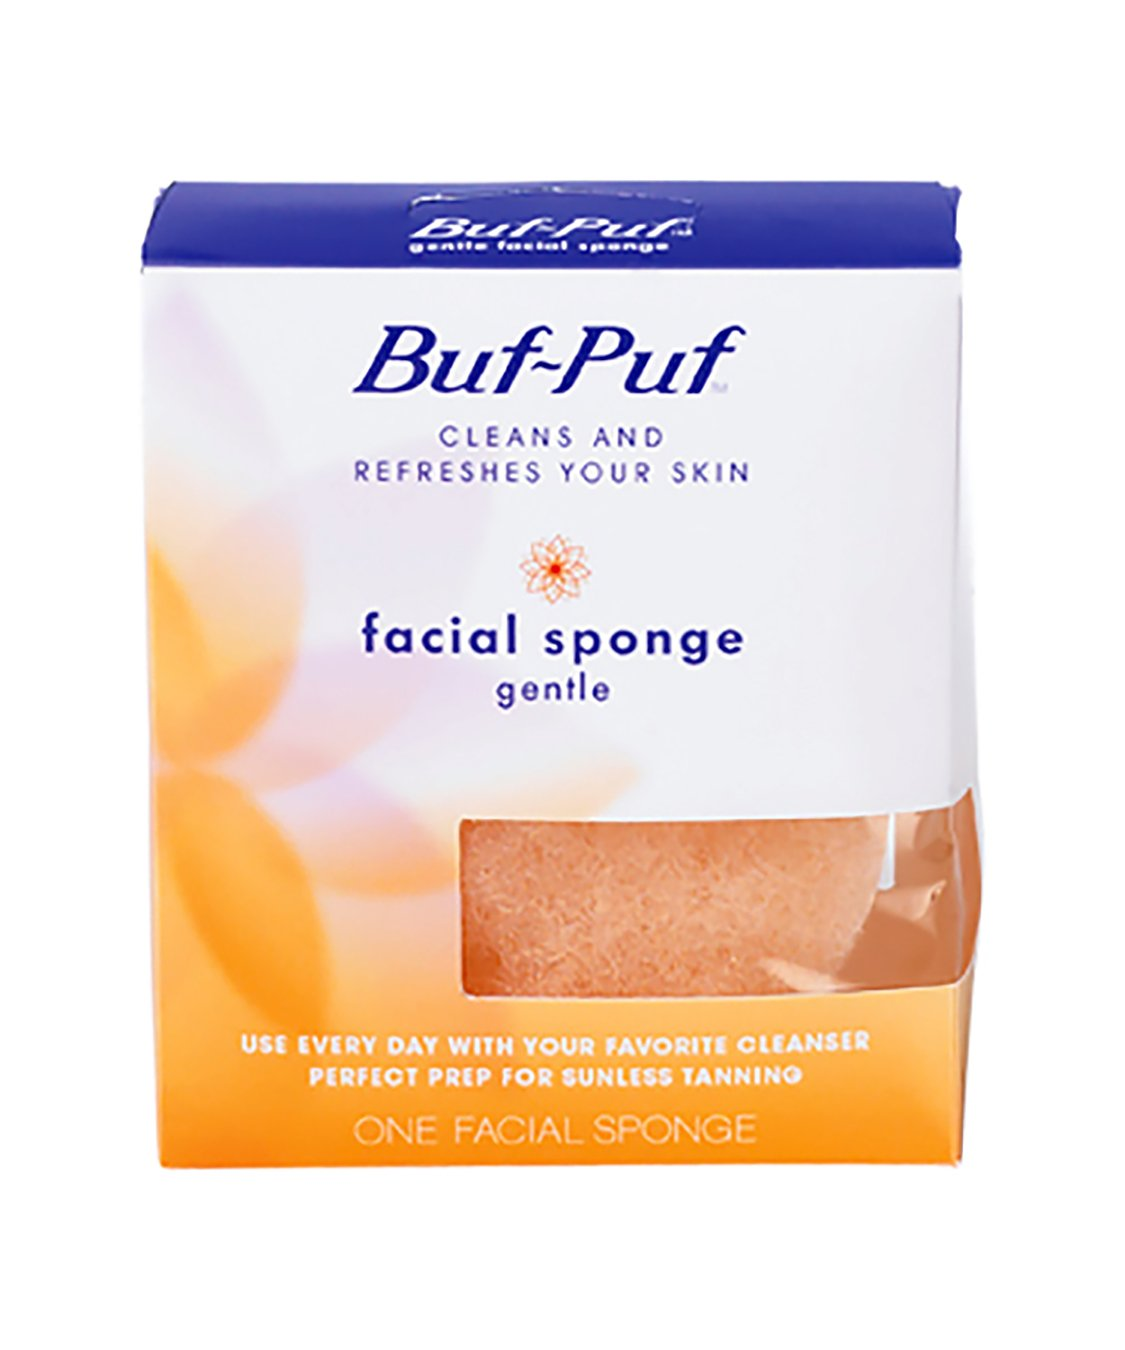 Buf-Puf Reusable All-Purpose Facial Sponge, Gentle (Pack of 6)